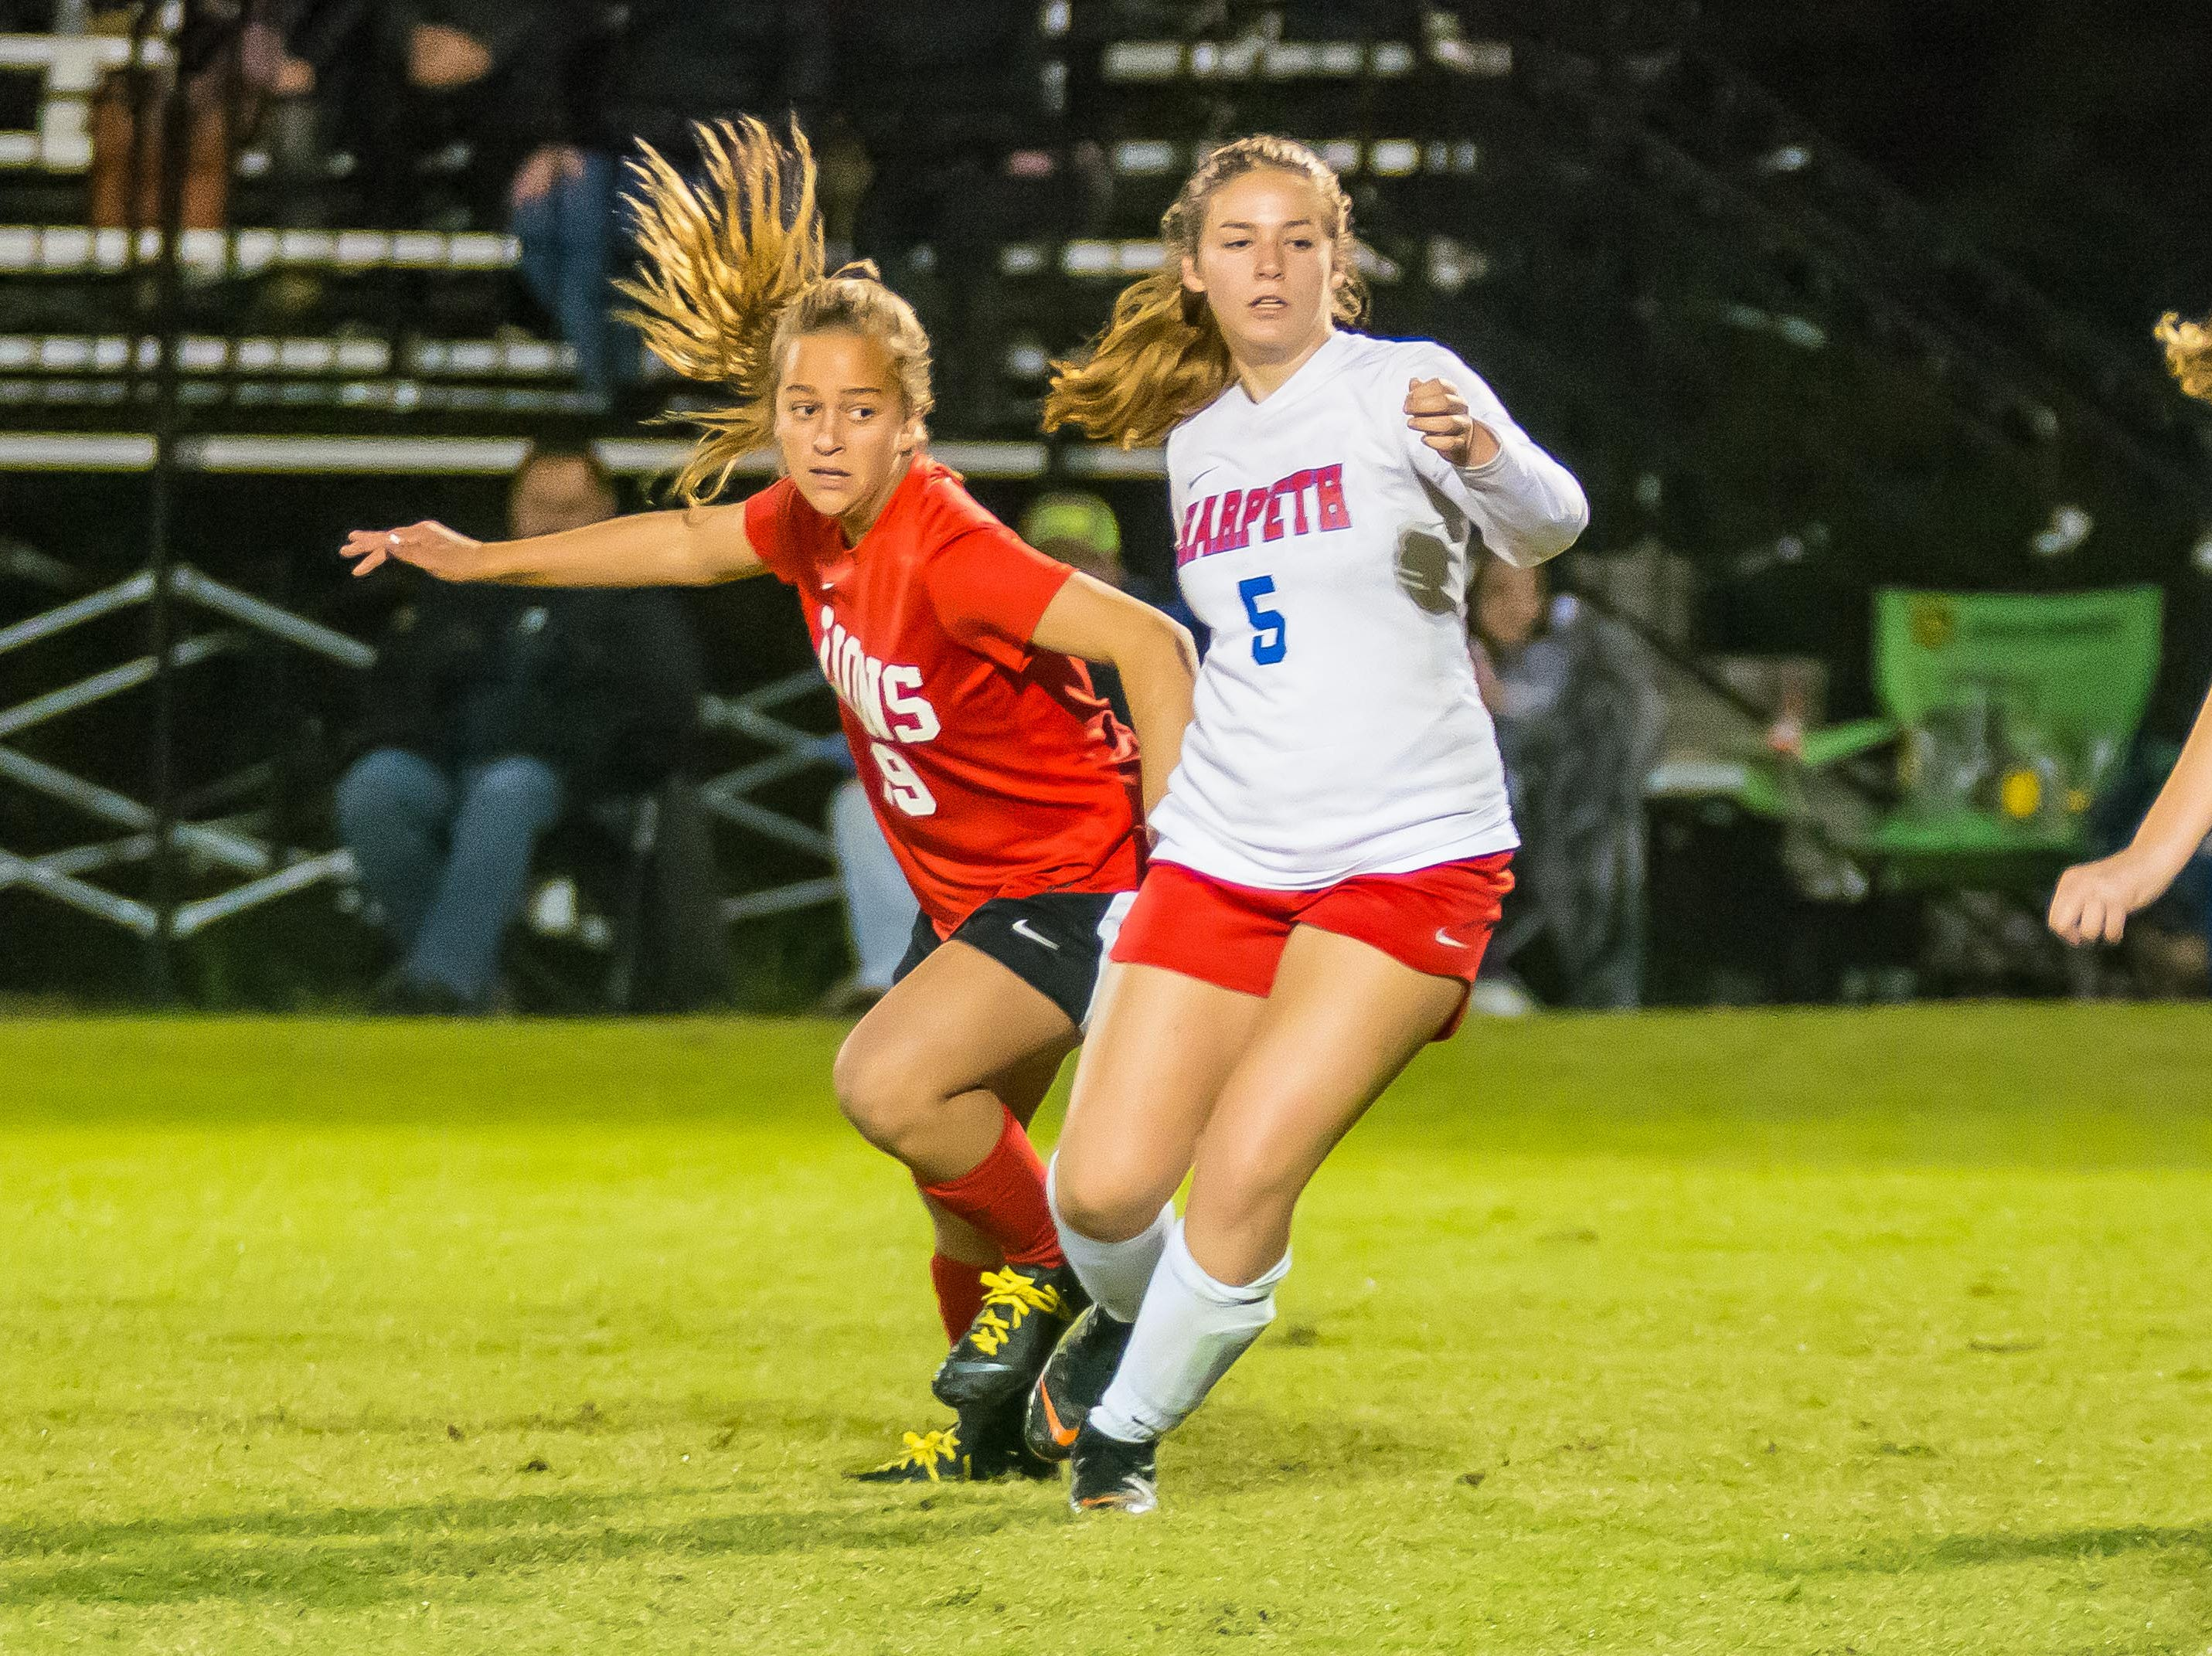 Grace Christian freshman Adyson Wolf added the last goal of the evening to make it a 4-0 against Harpeth. It marked the first time all season Harpeth had been shut out all season.